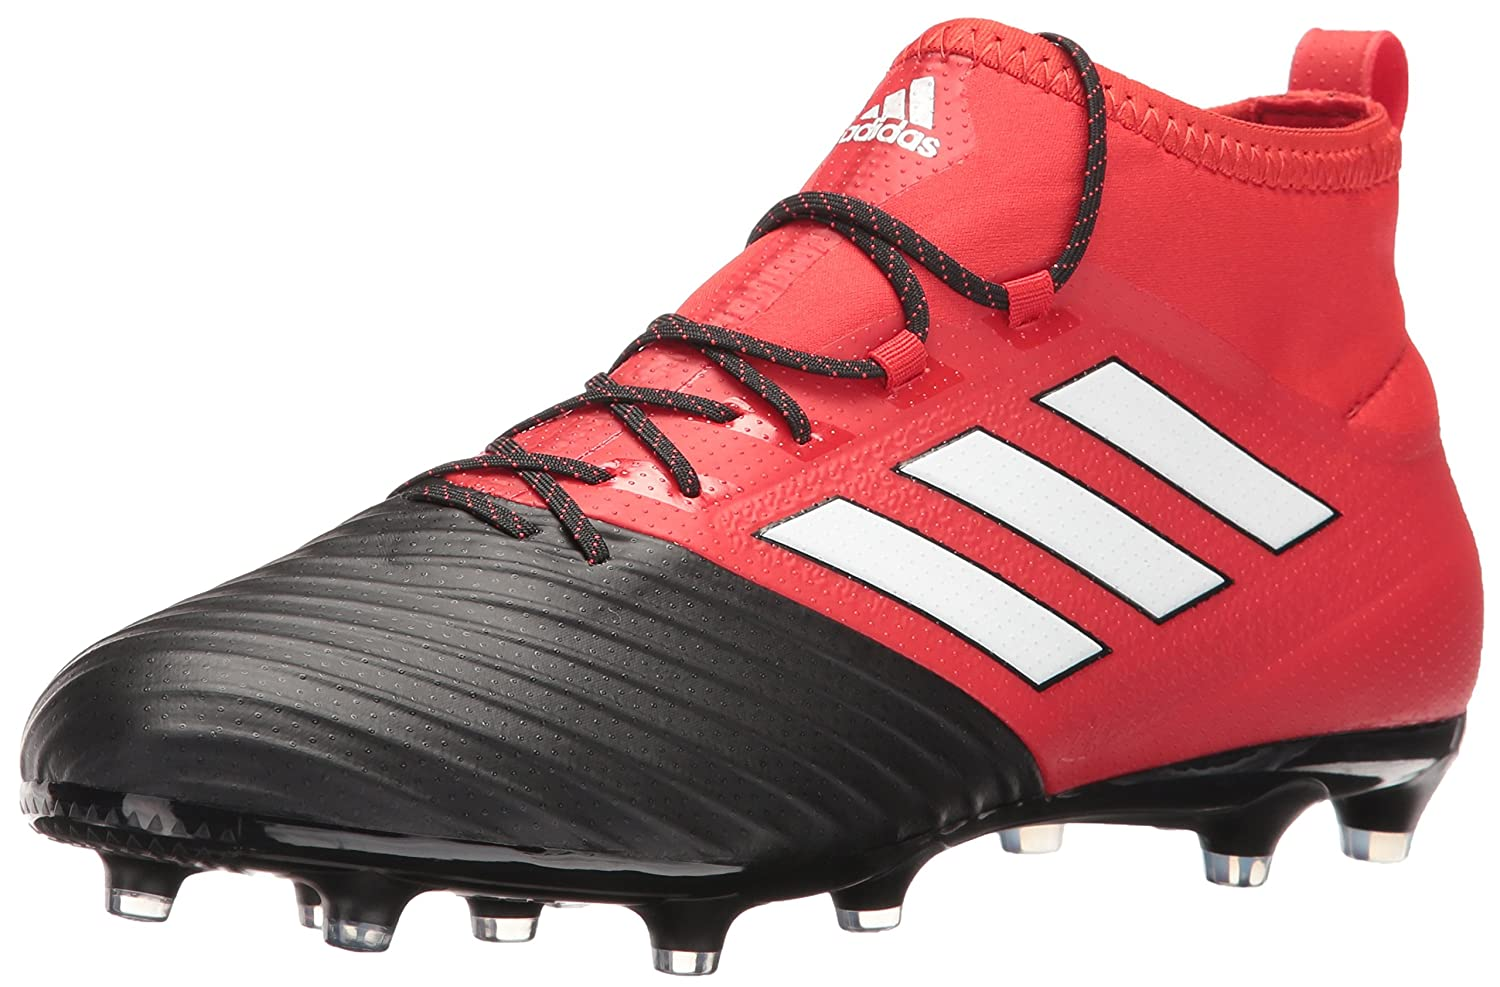 8ef09dfbd405da Adidas Men's Ace 17.2 Primemesh Firm Ground Cleats Soccer Shoe: Amazon.ca:  Shoes & Handbags